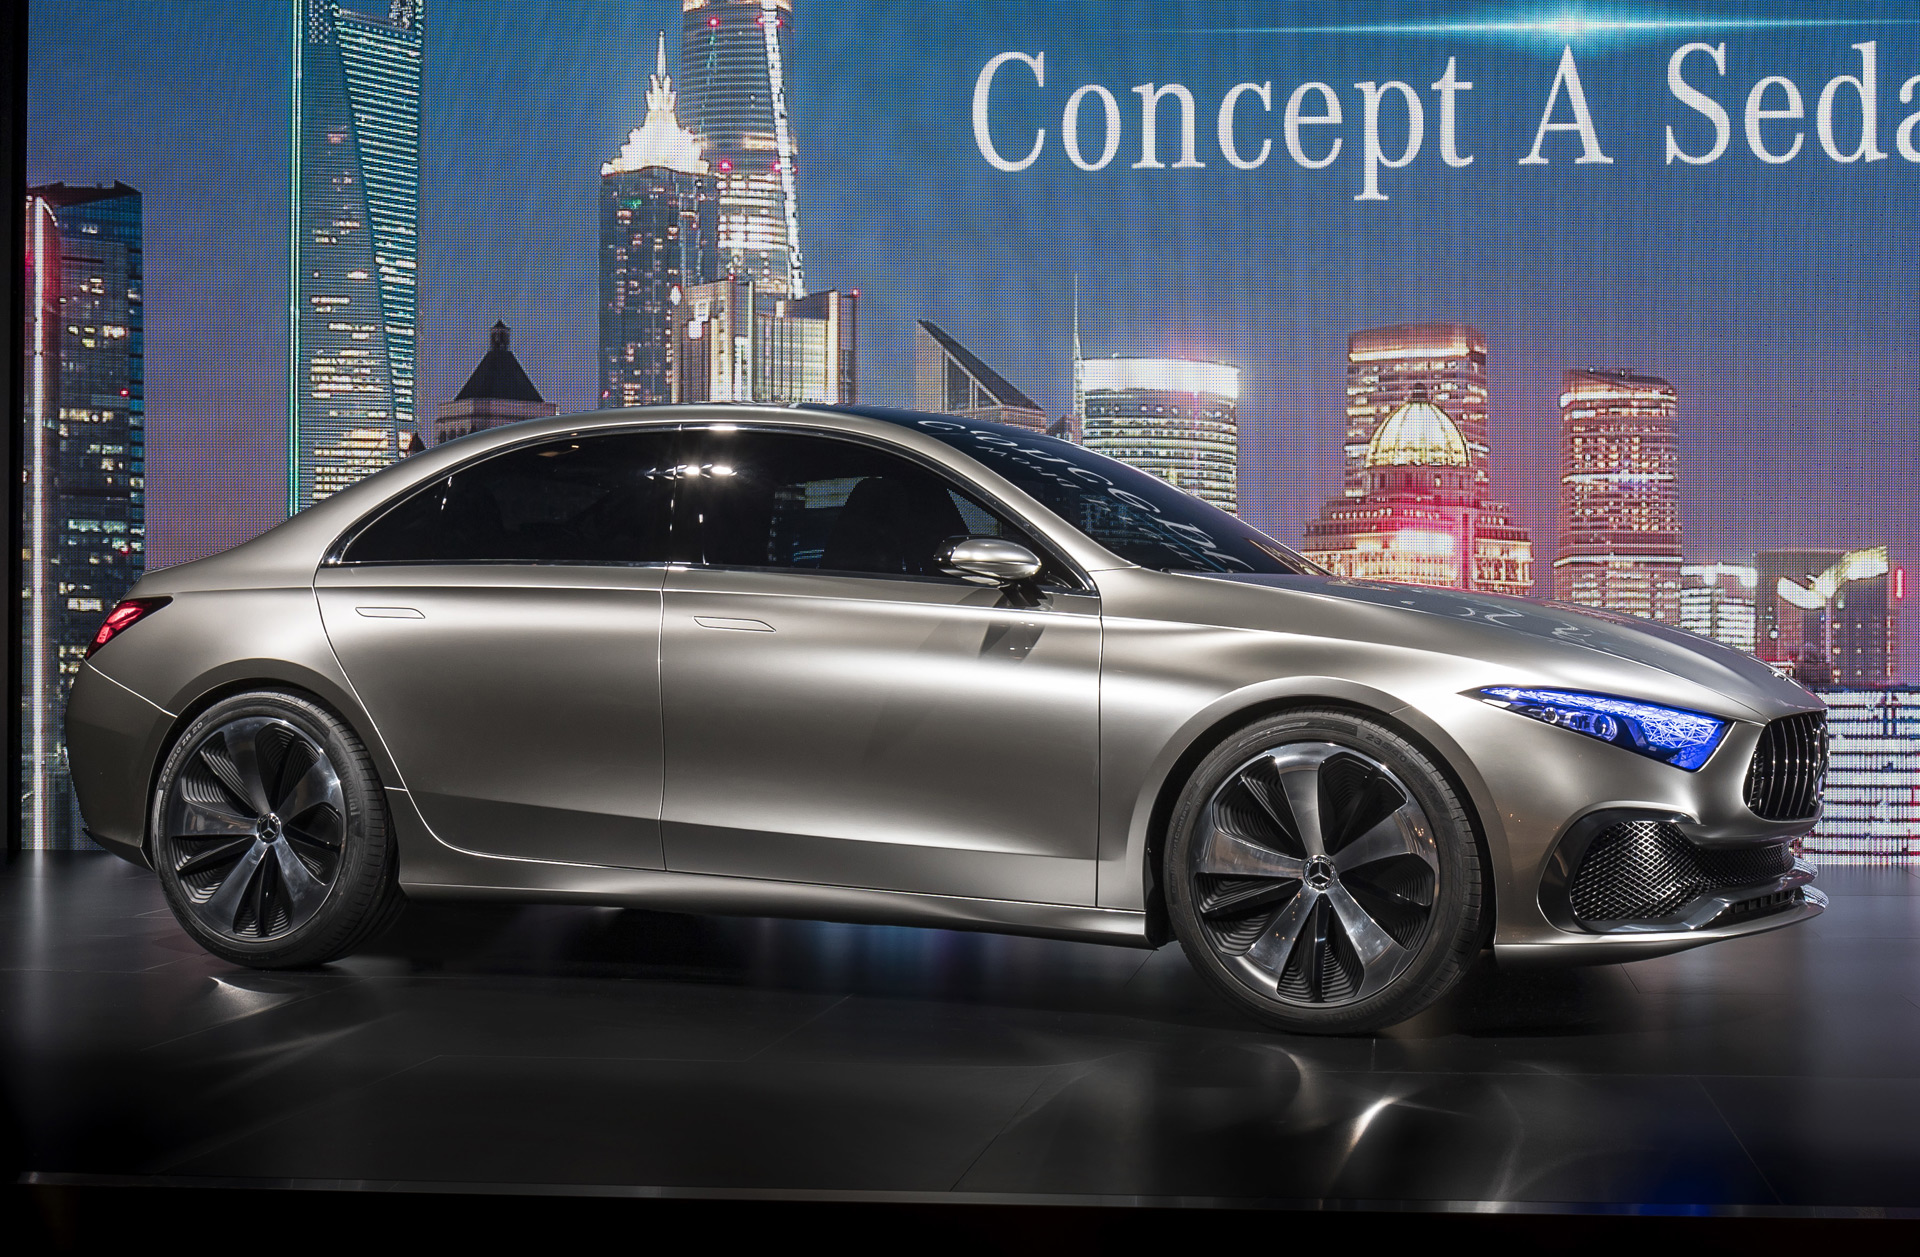 1109977 mercedes Benz A Class Sedan Previewed By Concept In Shanghai